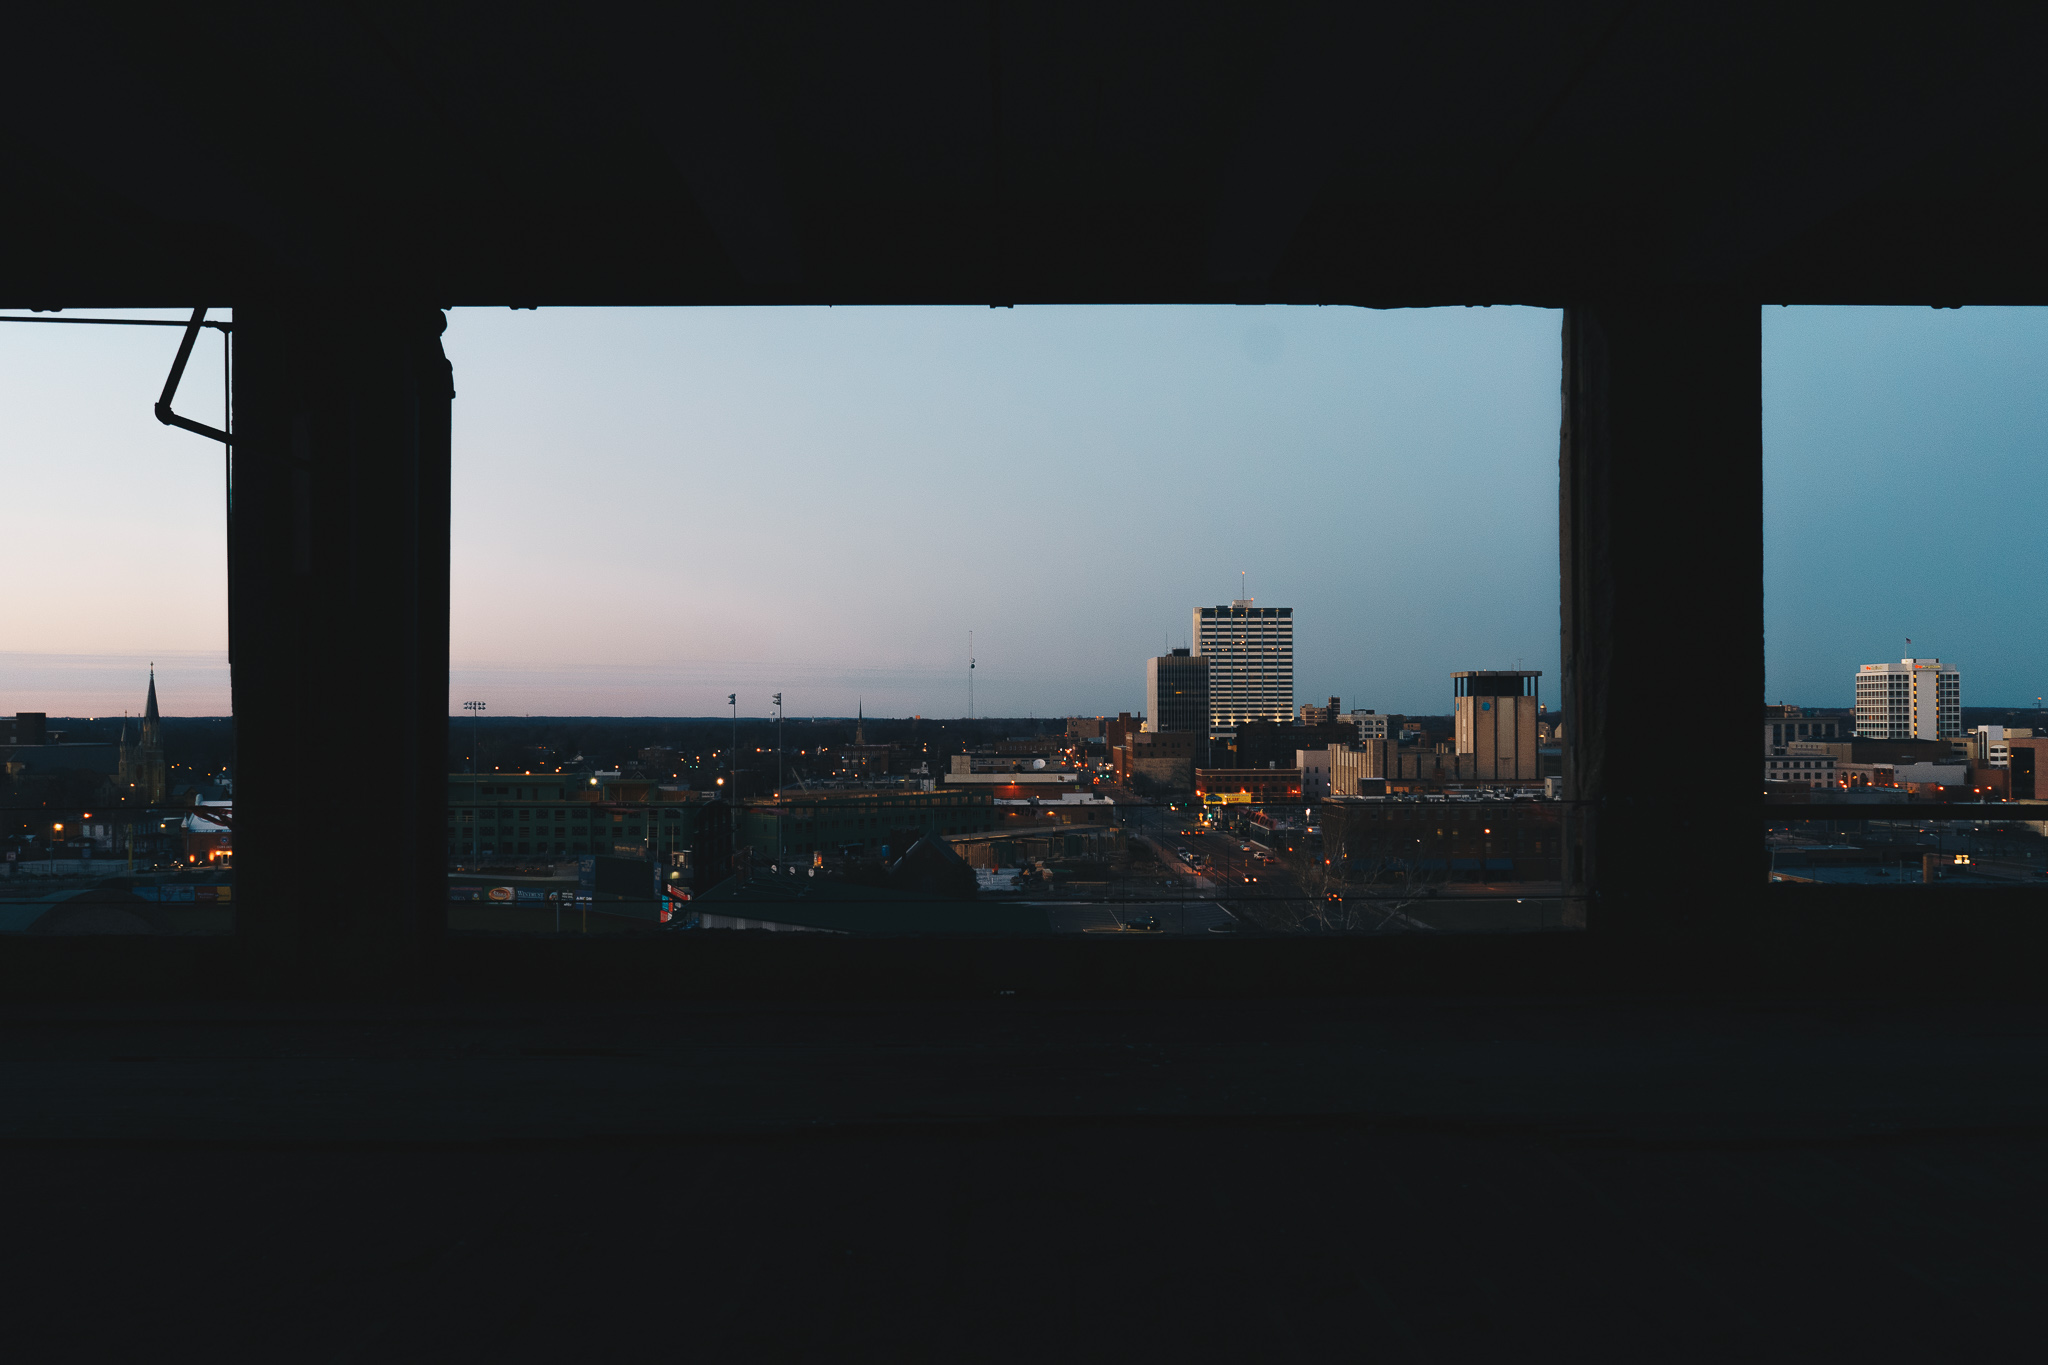 Studebaker Building 84 No. 4   A February 2018 photograph showing downtown South Bend from an upper floor of Studebaker Building 84, the main assembly plant of the former automaker's sprawling South Bend Plant 1.